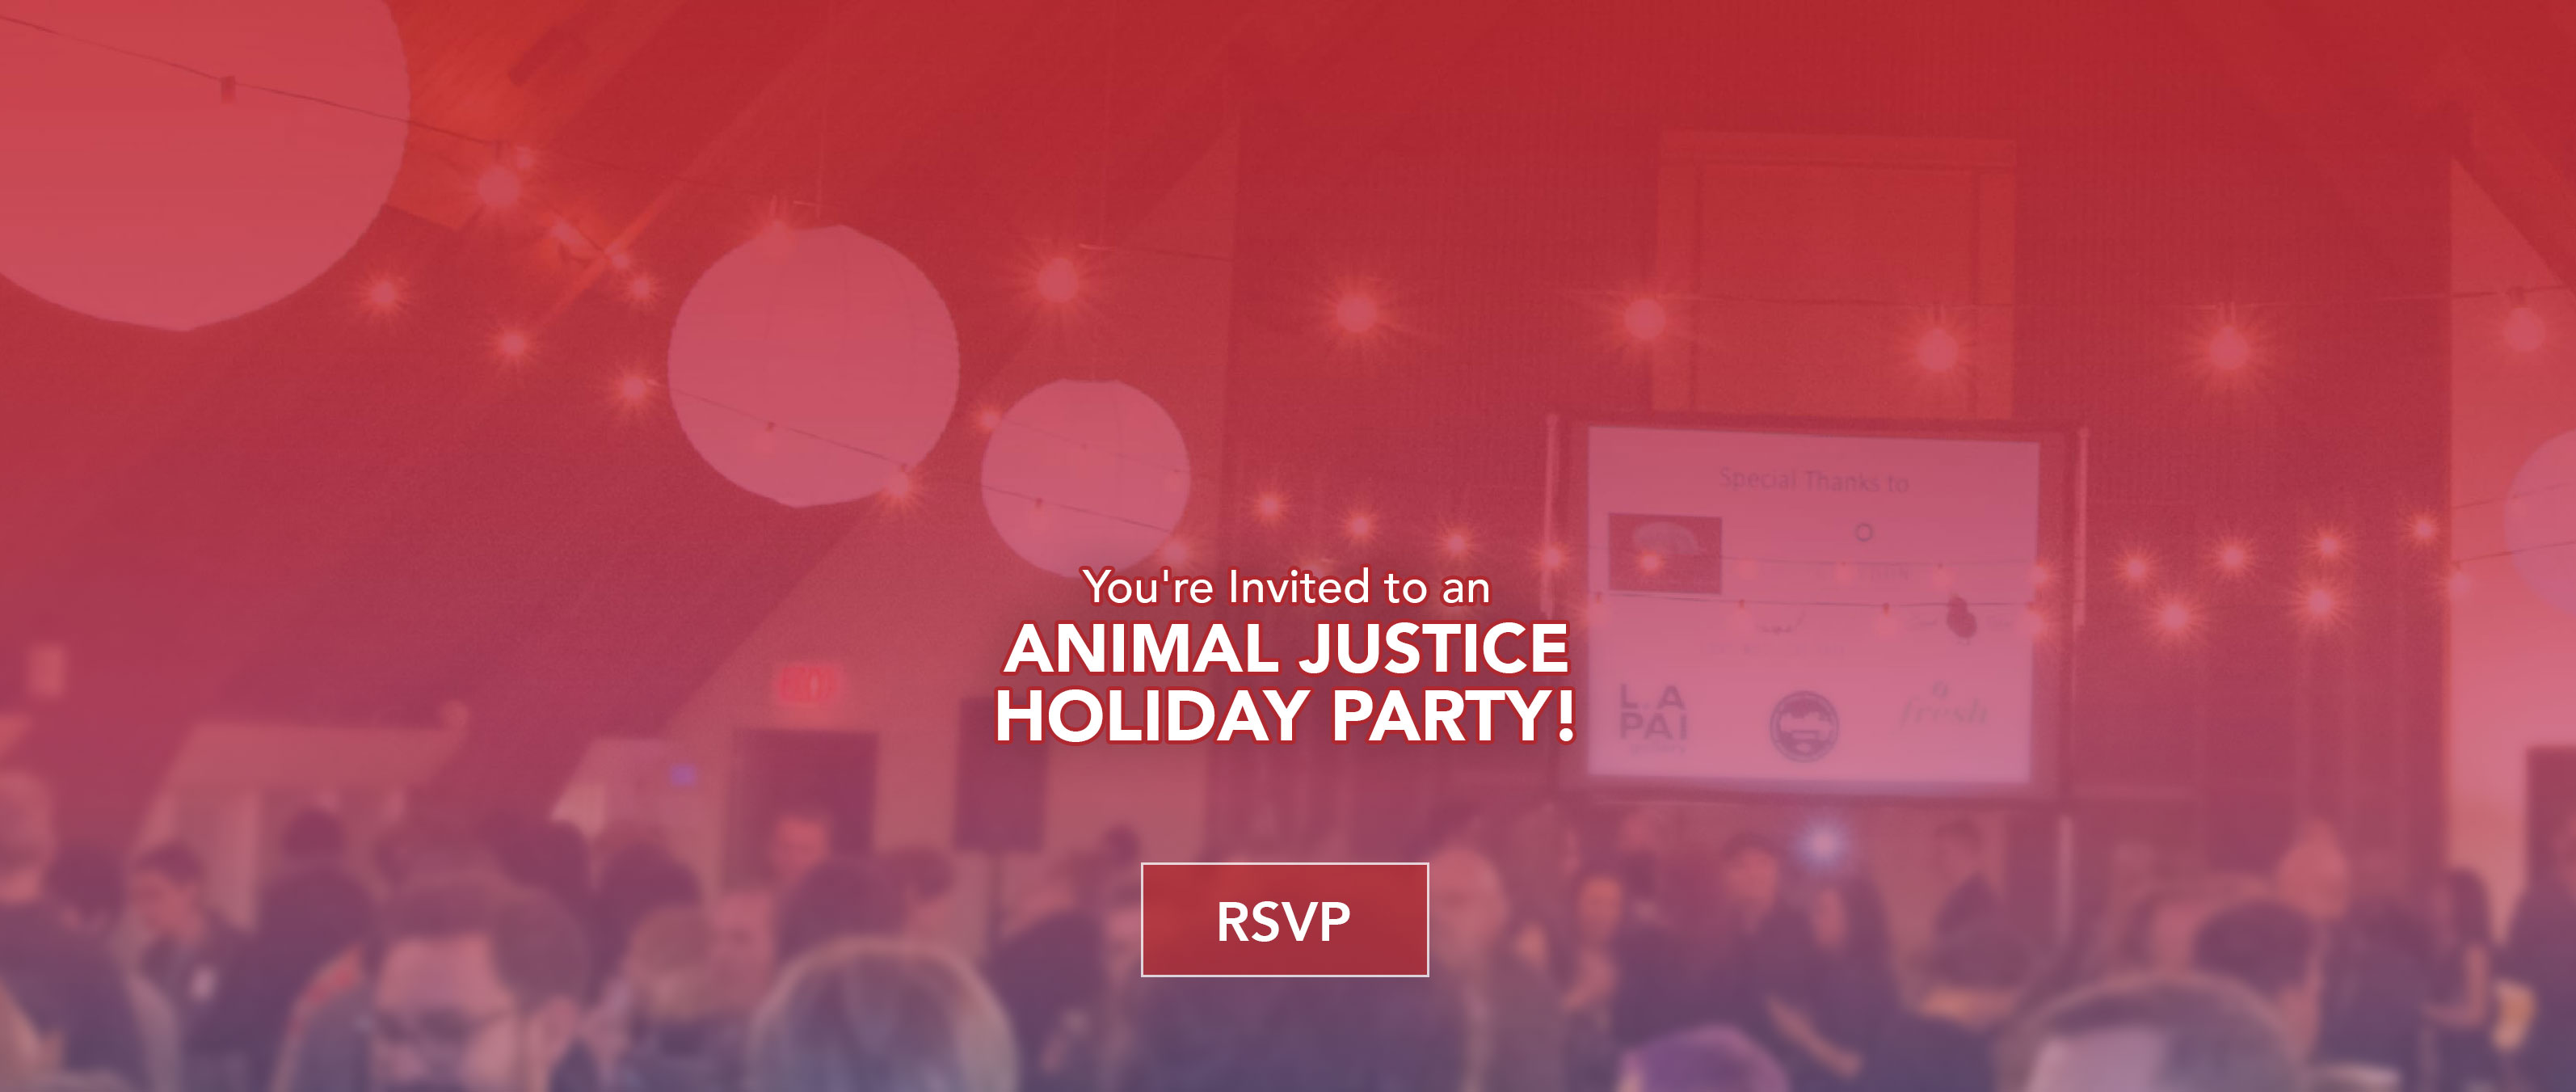 2019-holiday-party